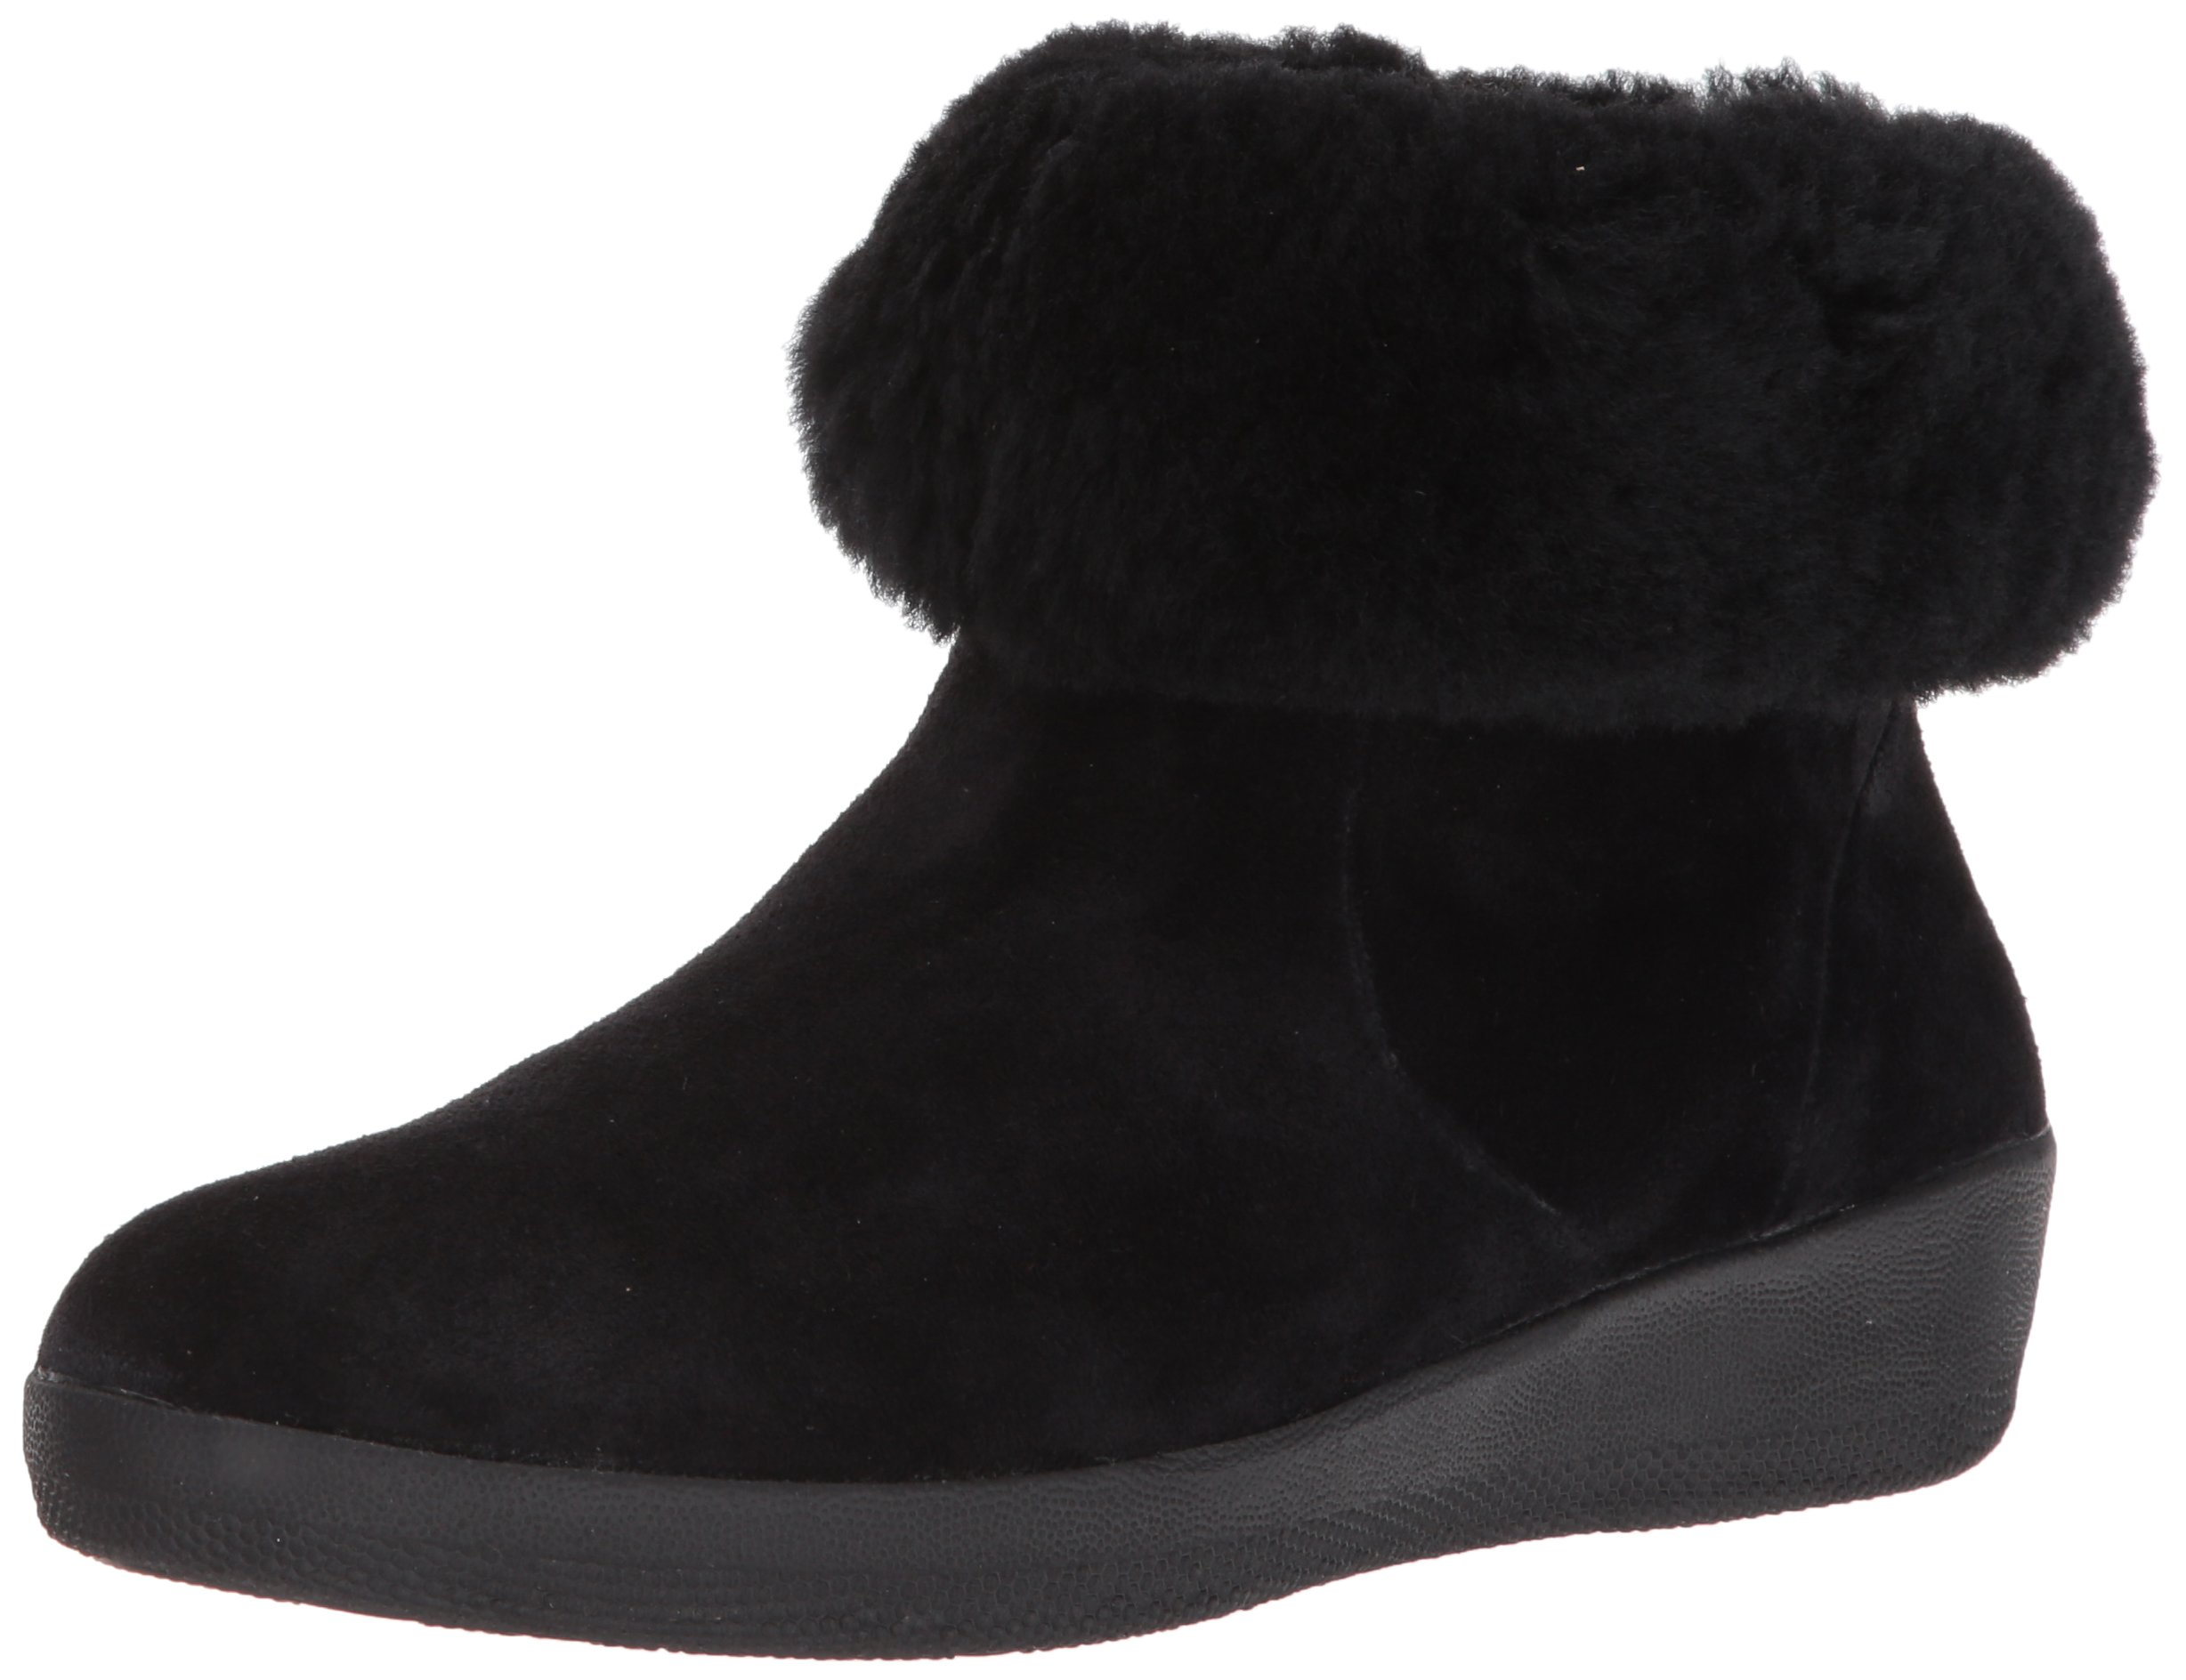 FitFlop Women's Skatebootie Suede Shearling Ankle Boot, Black, 9 M US